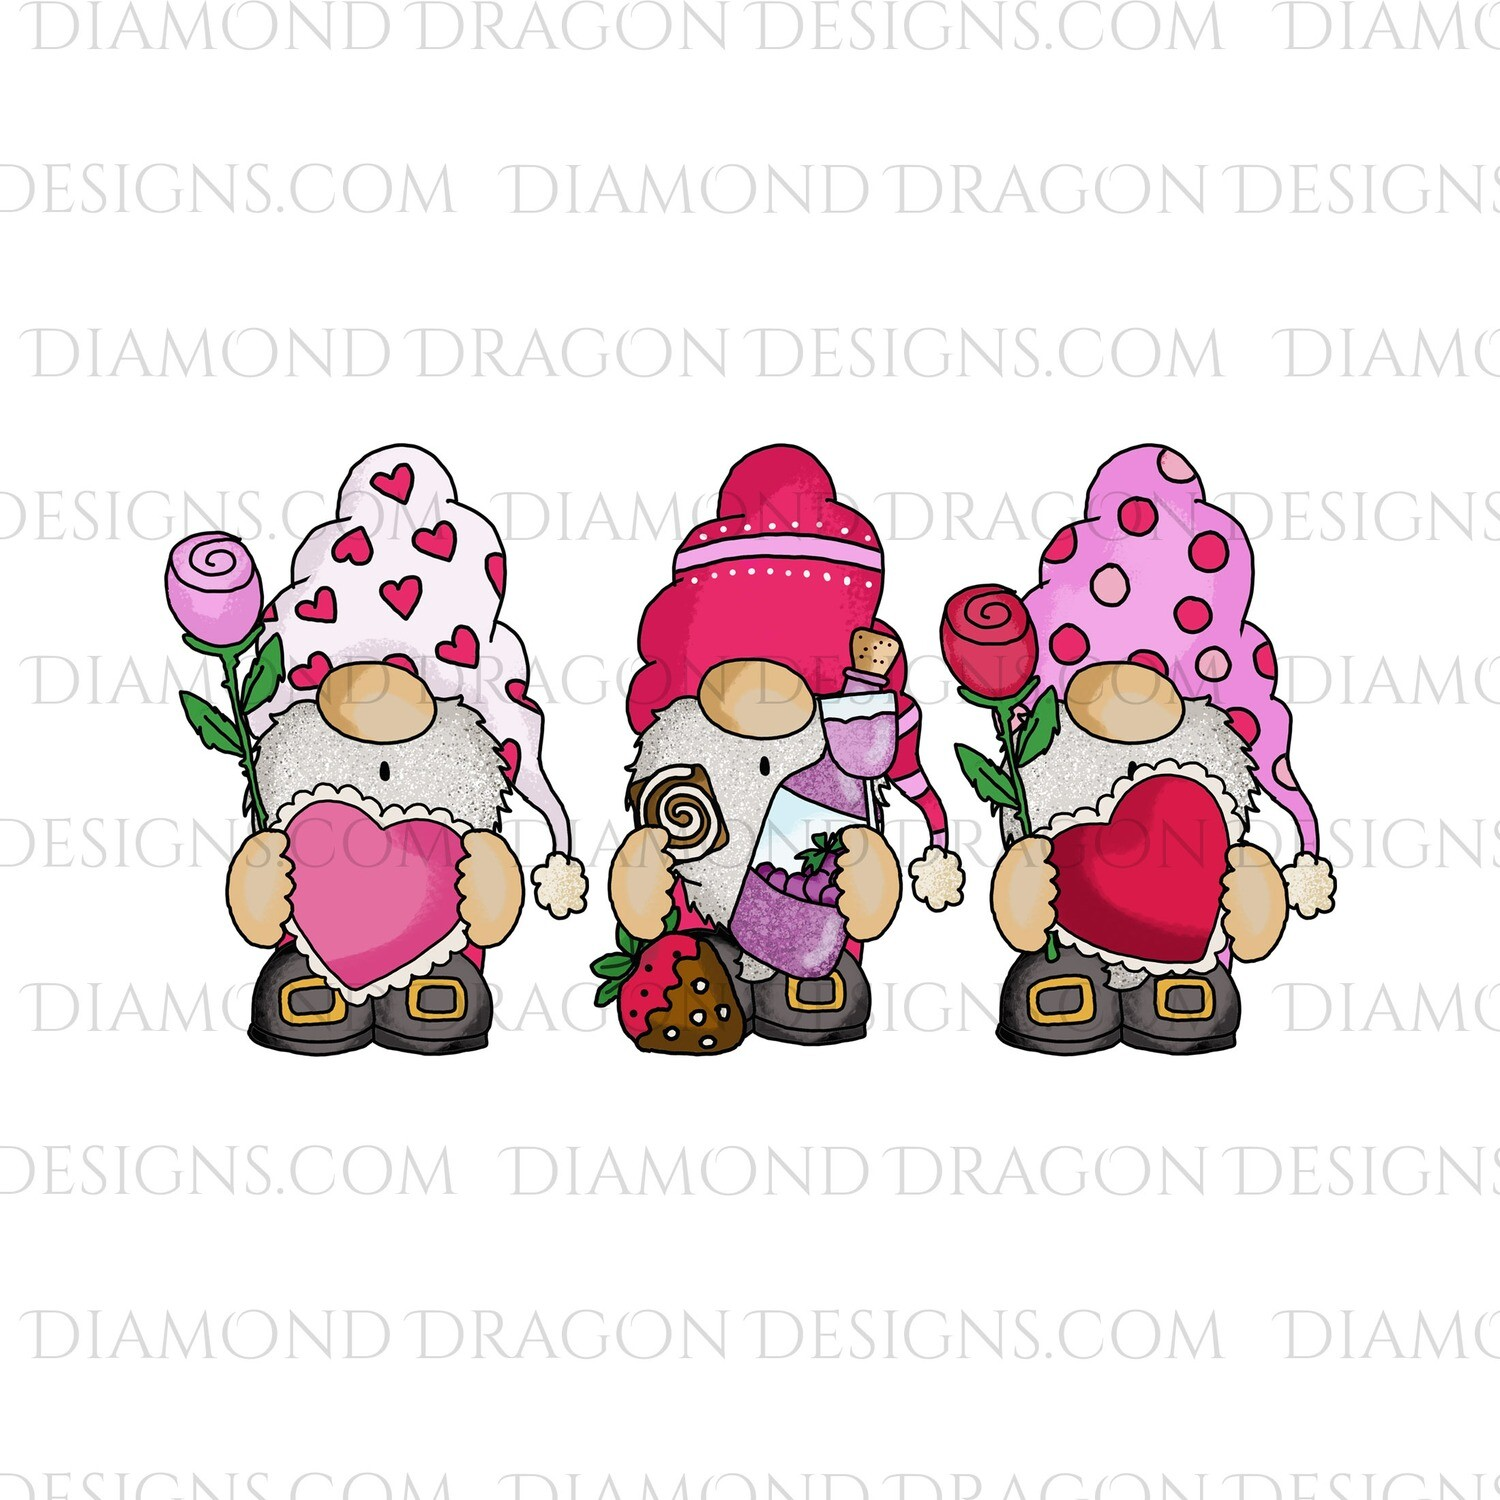 Valentines - Cute Heart, Gnomes, Waterslide